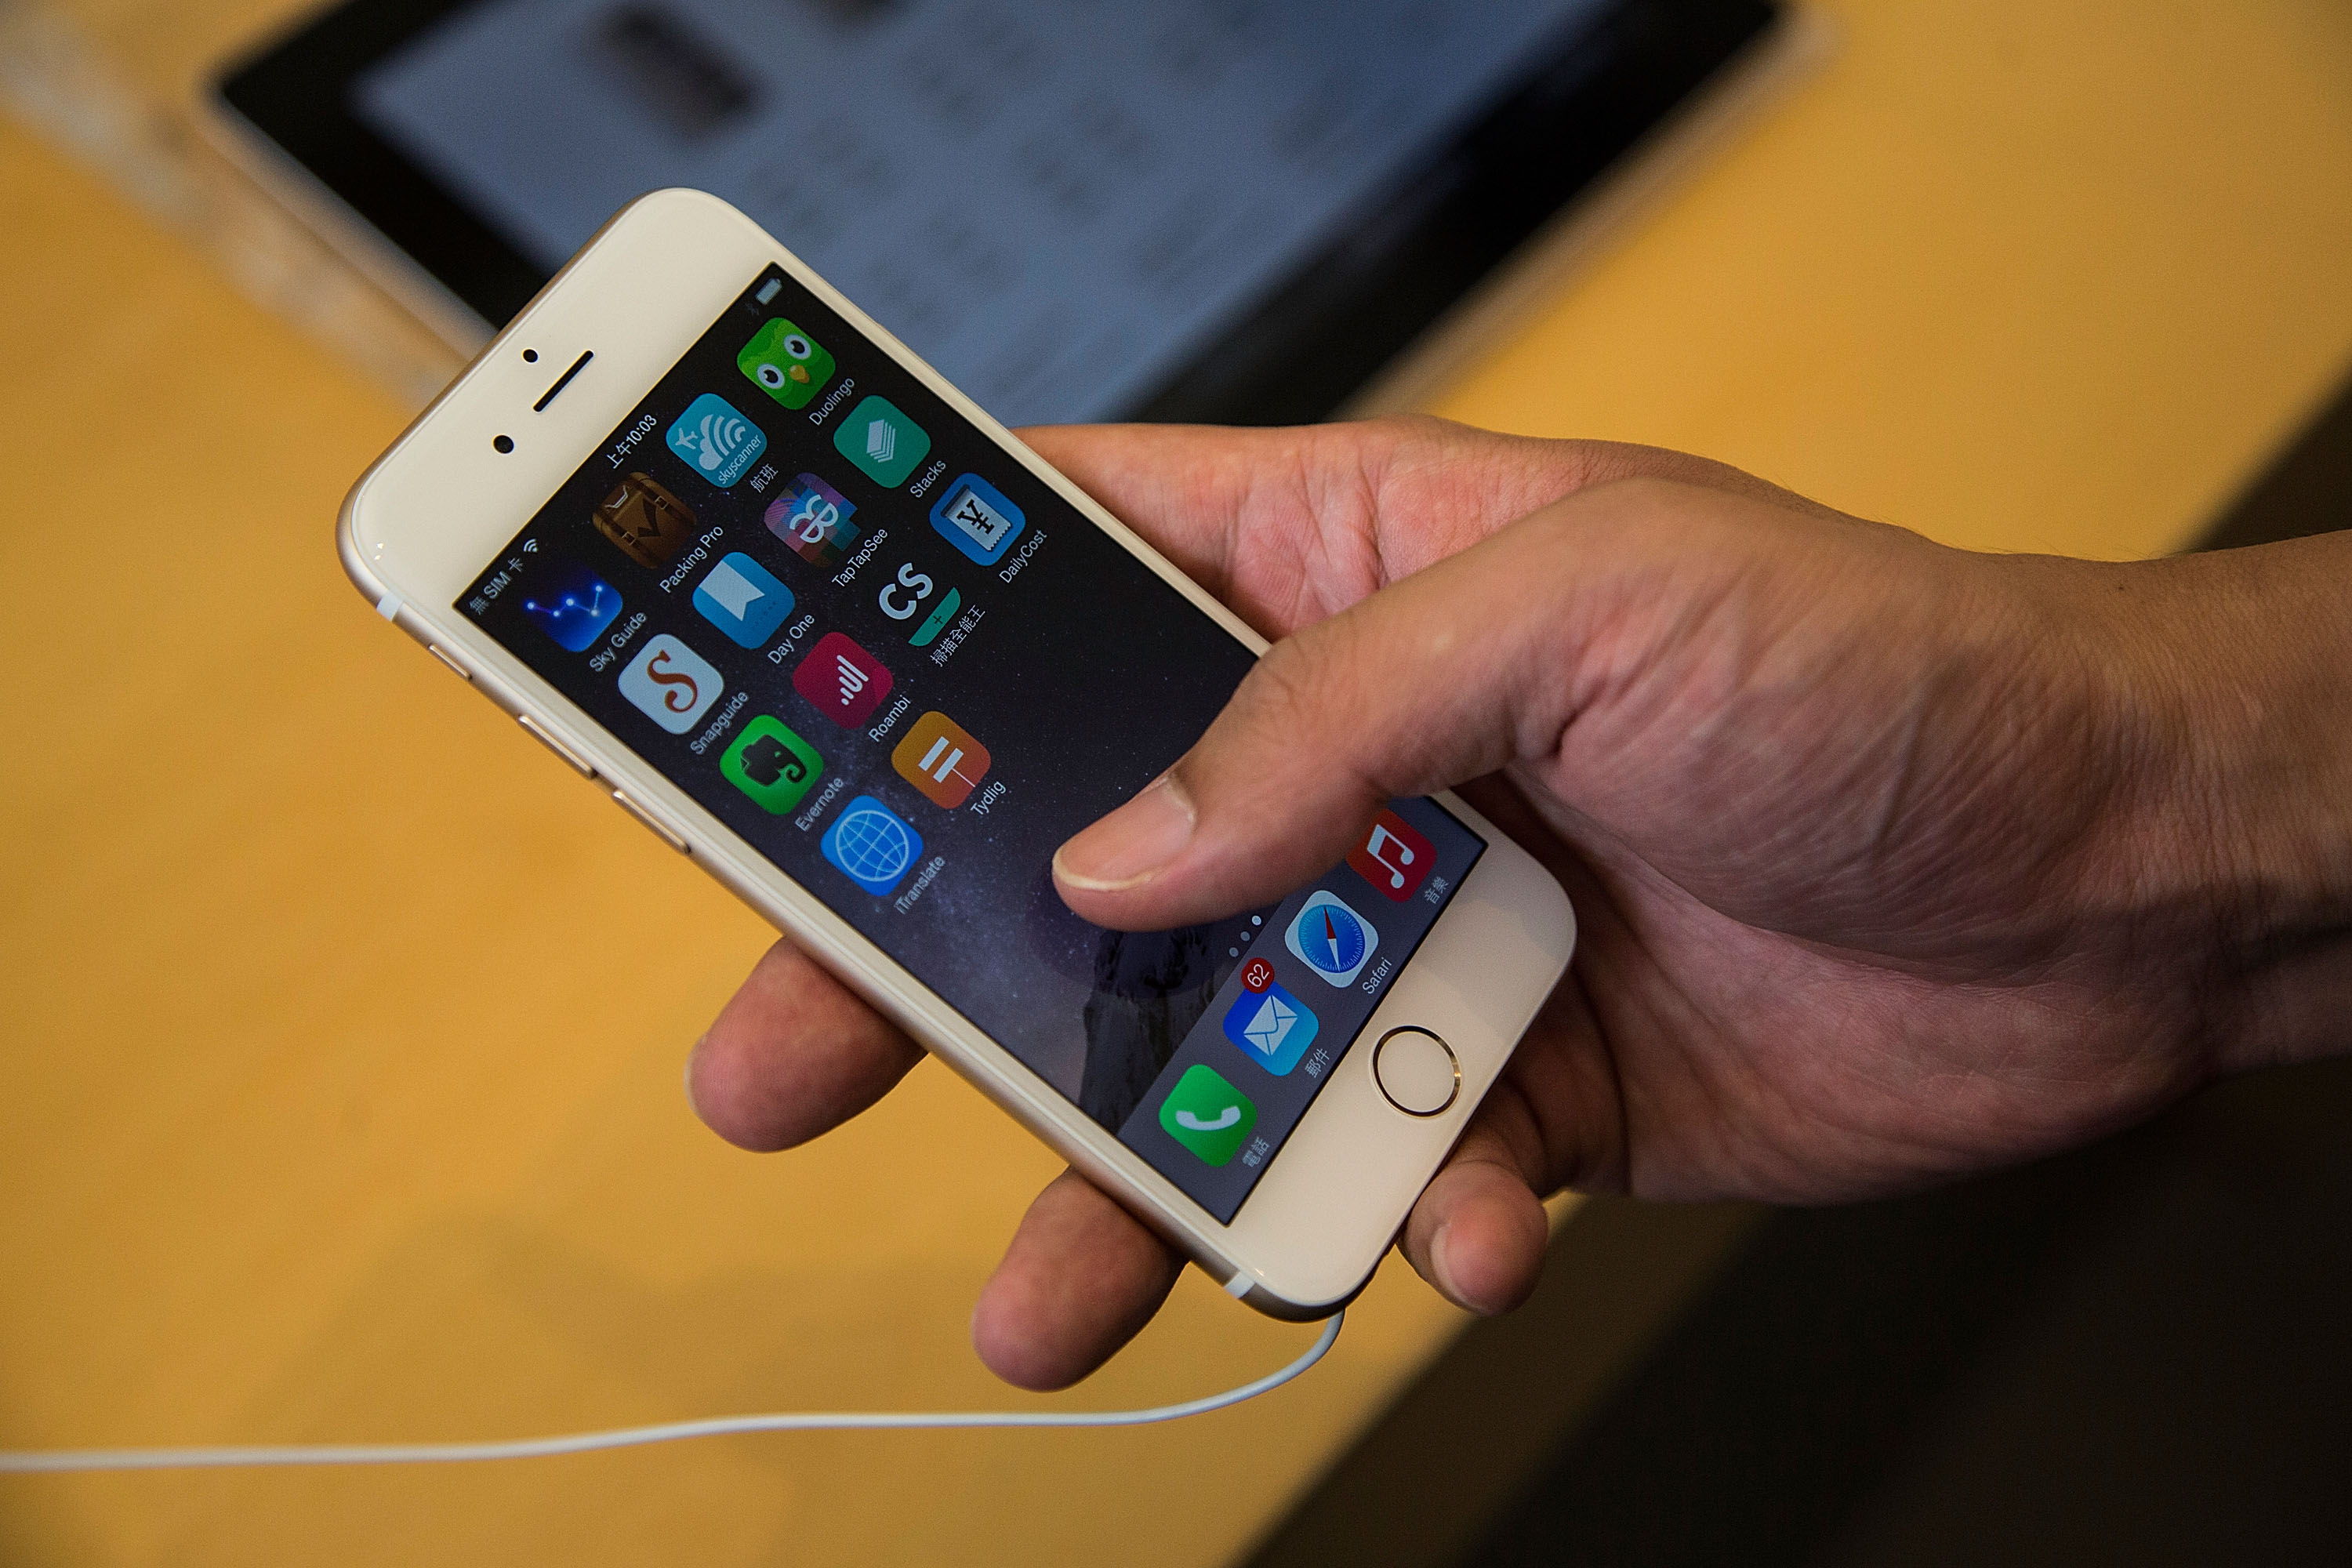 Customer looks at the new iPhones on display at the launch of the new Apple iPhone 6 and iPhone 6 Plus at the Apple IFC store on September 19, 2014 in Hong Kong, China.